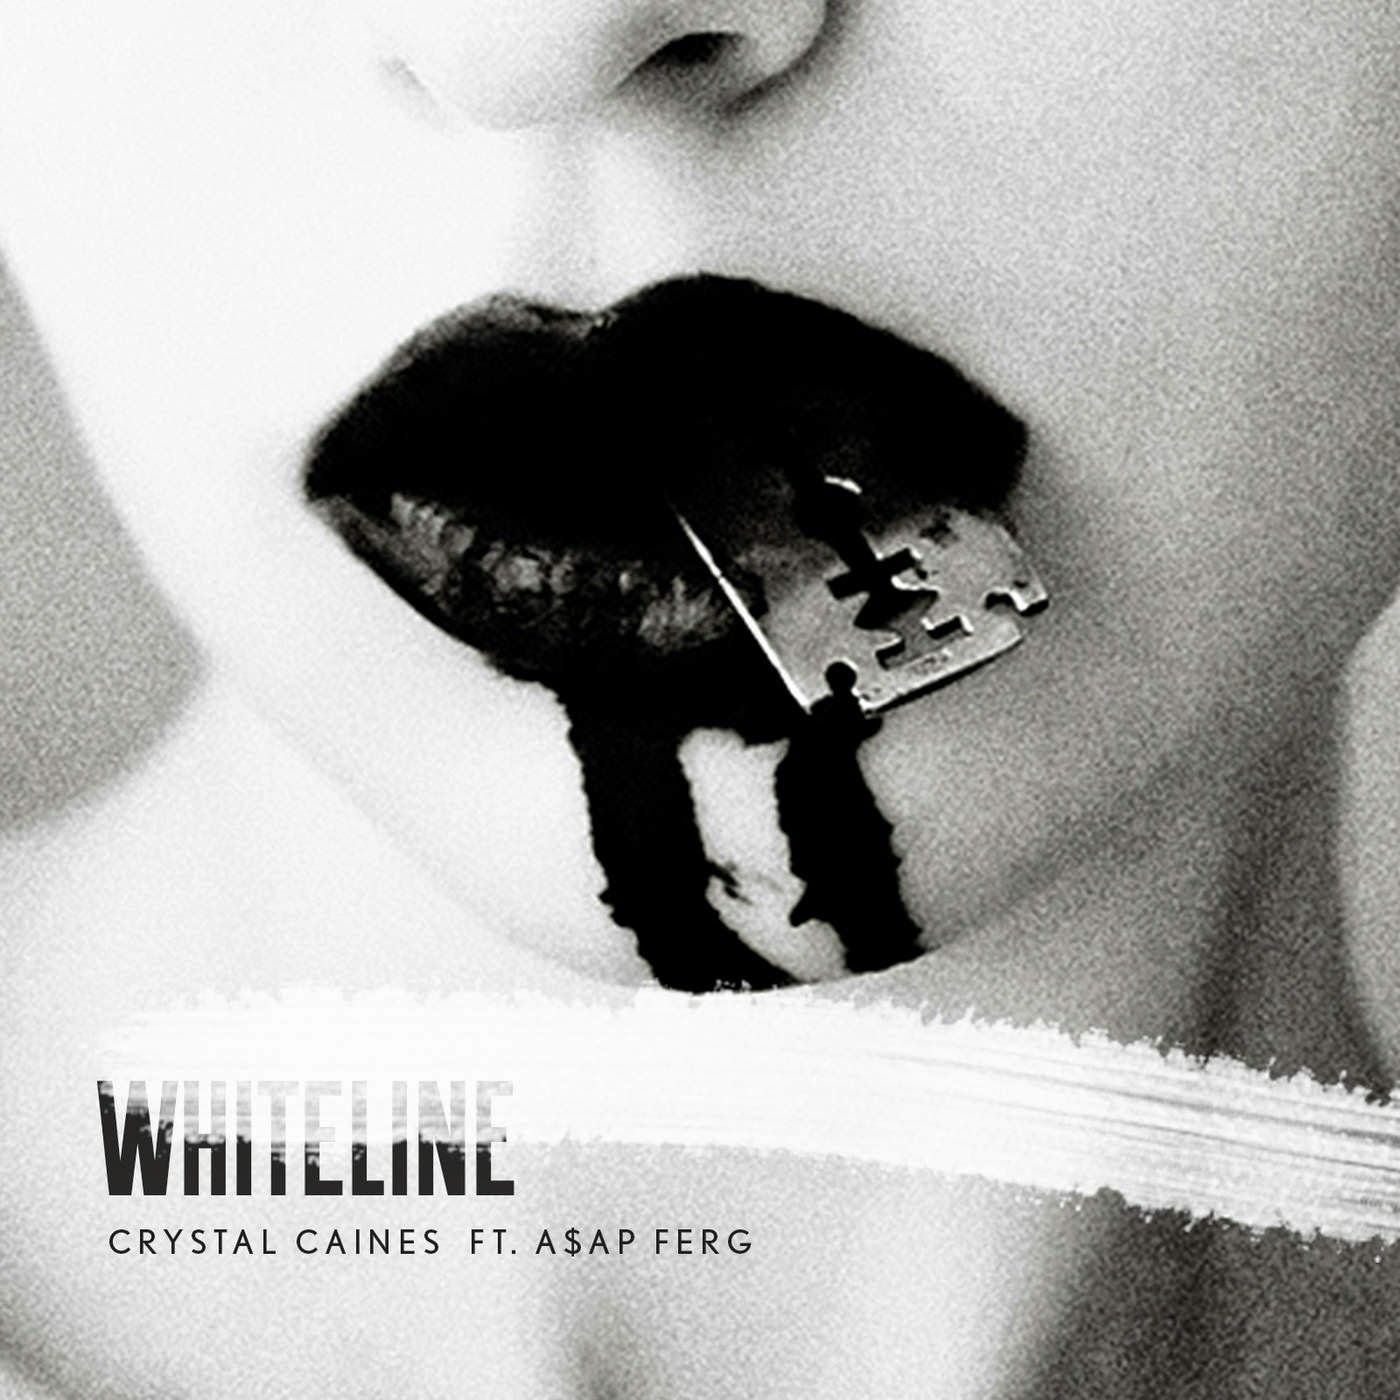 Crystal Caines - Whiteline (feat. A$Ap Ferg) - Single Cover